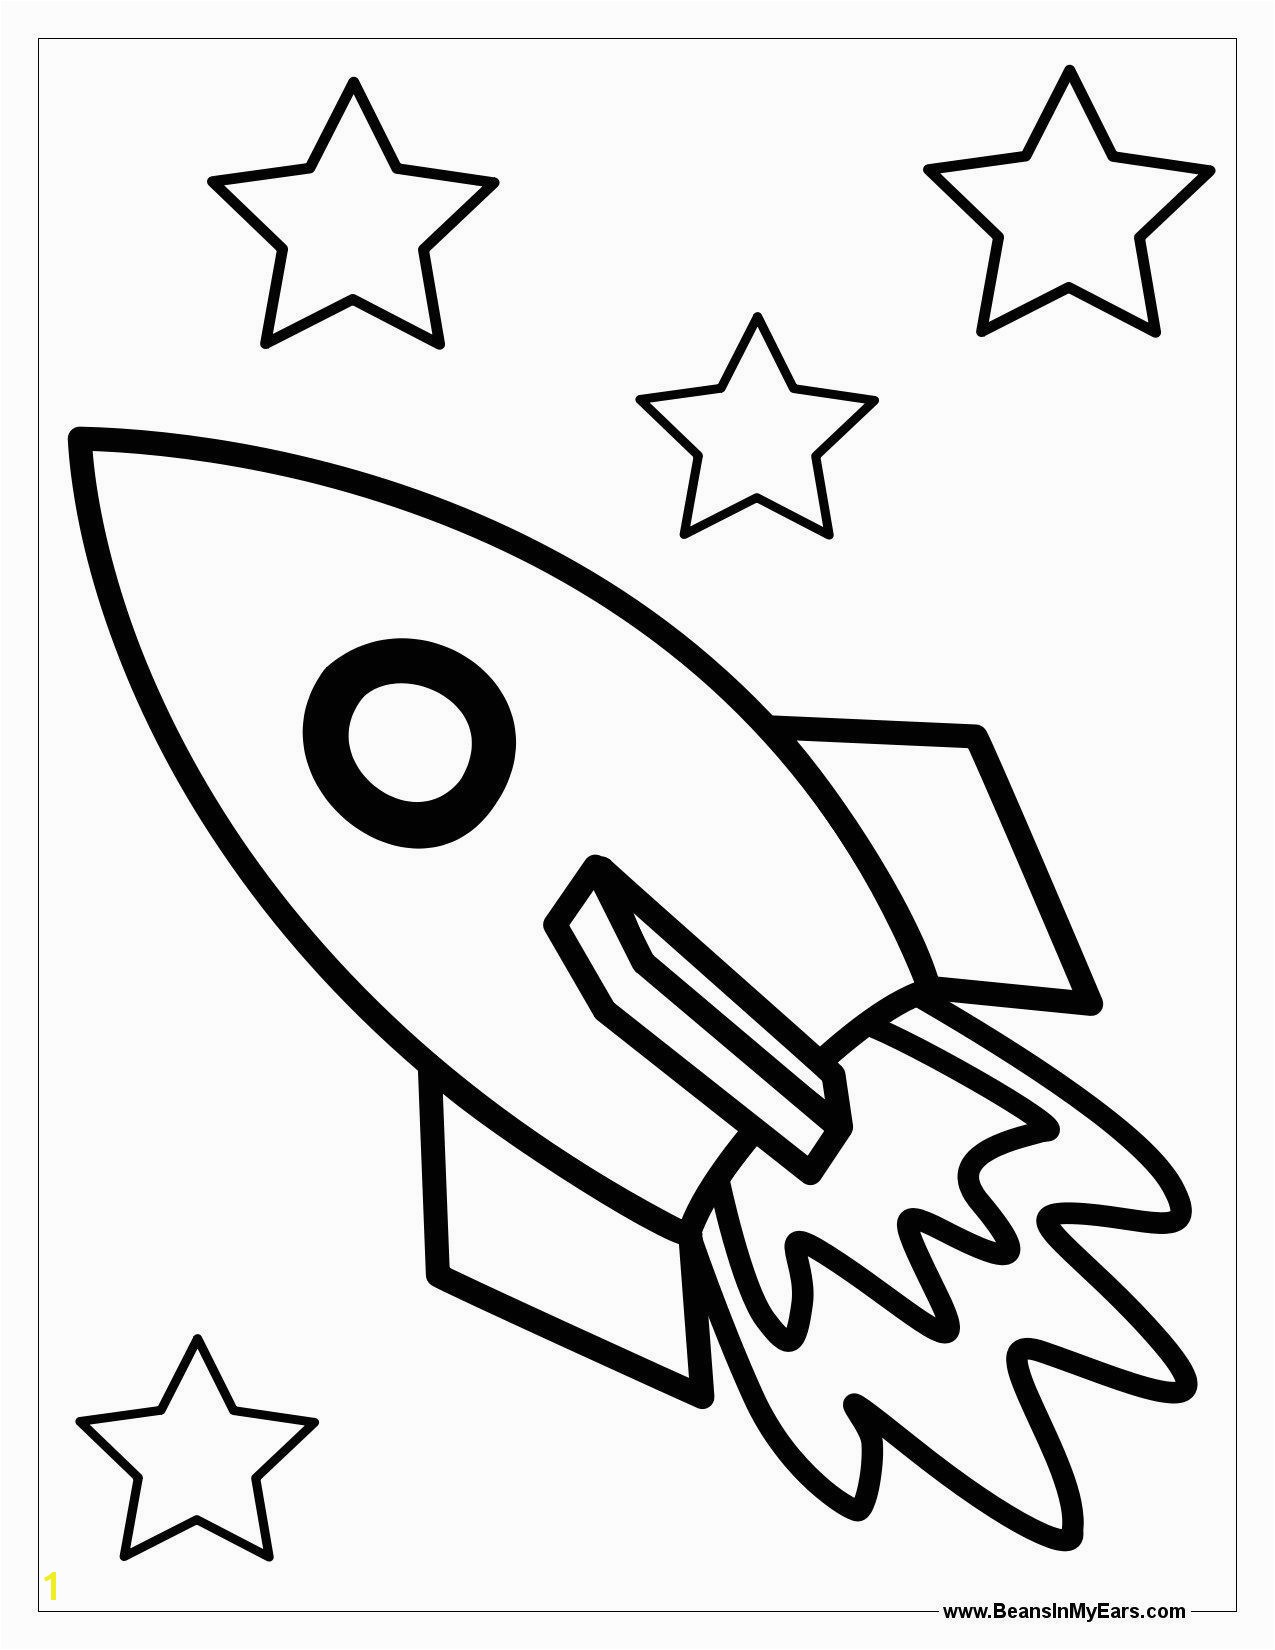 Labeled coloring pages rocket ship free printable rocket ship coloring pages free rocket ship coloring pages rocket ship coloring page